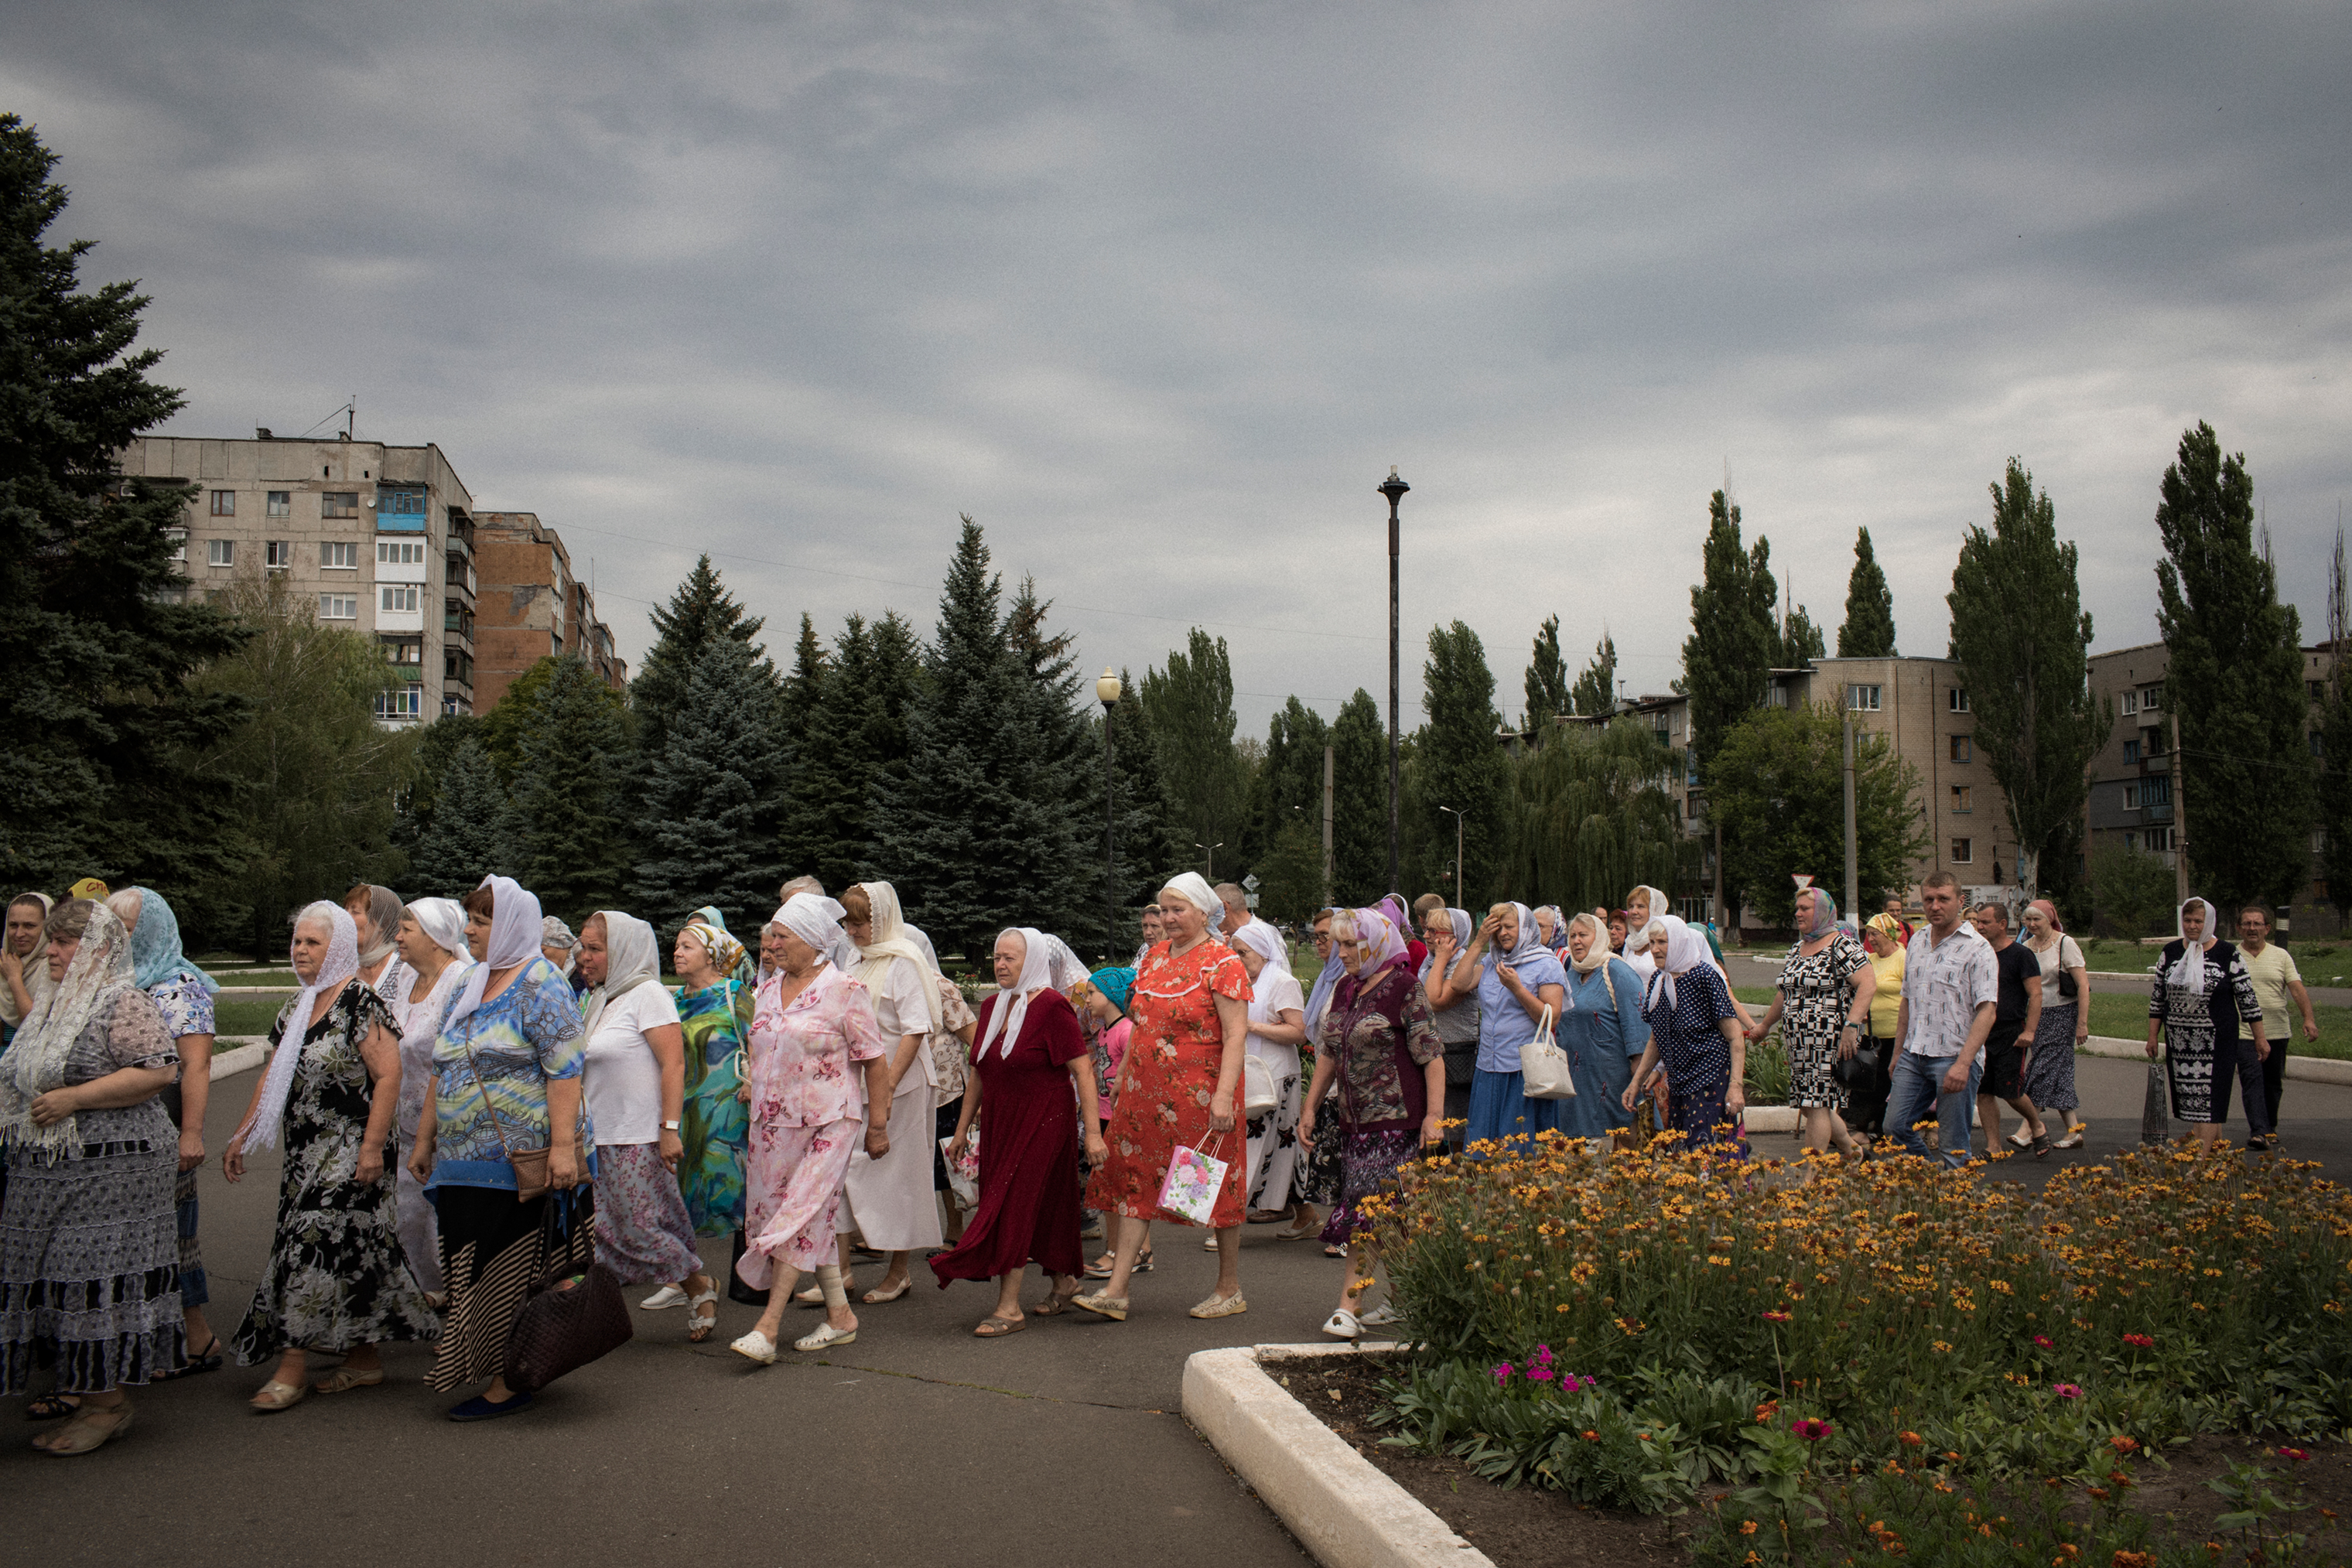 Parishioners participate in a procession in front of the Church of St. Mary Magdalene in Avdeevka. The church stands next to a minefield.